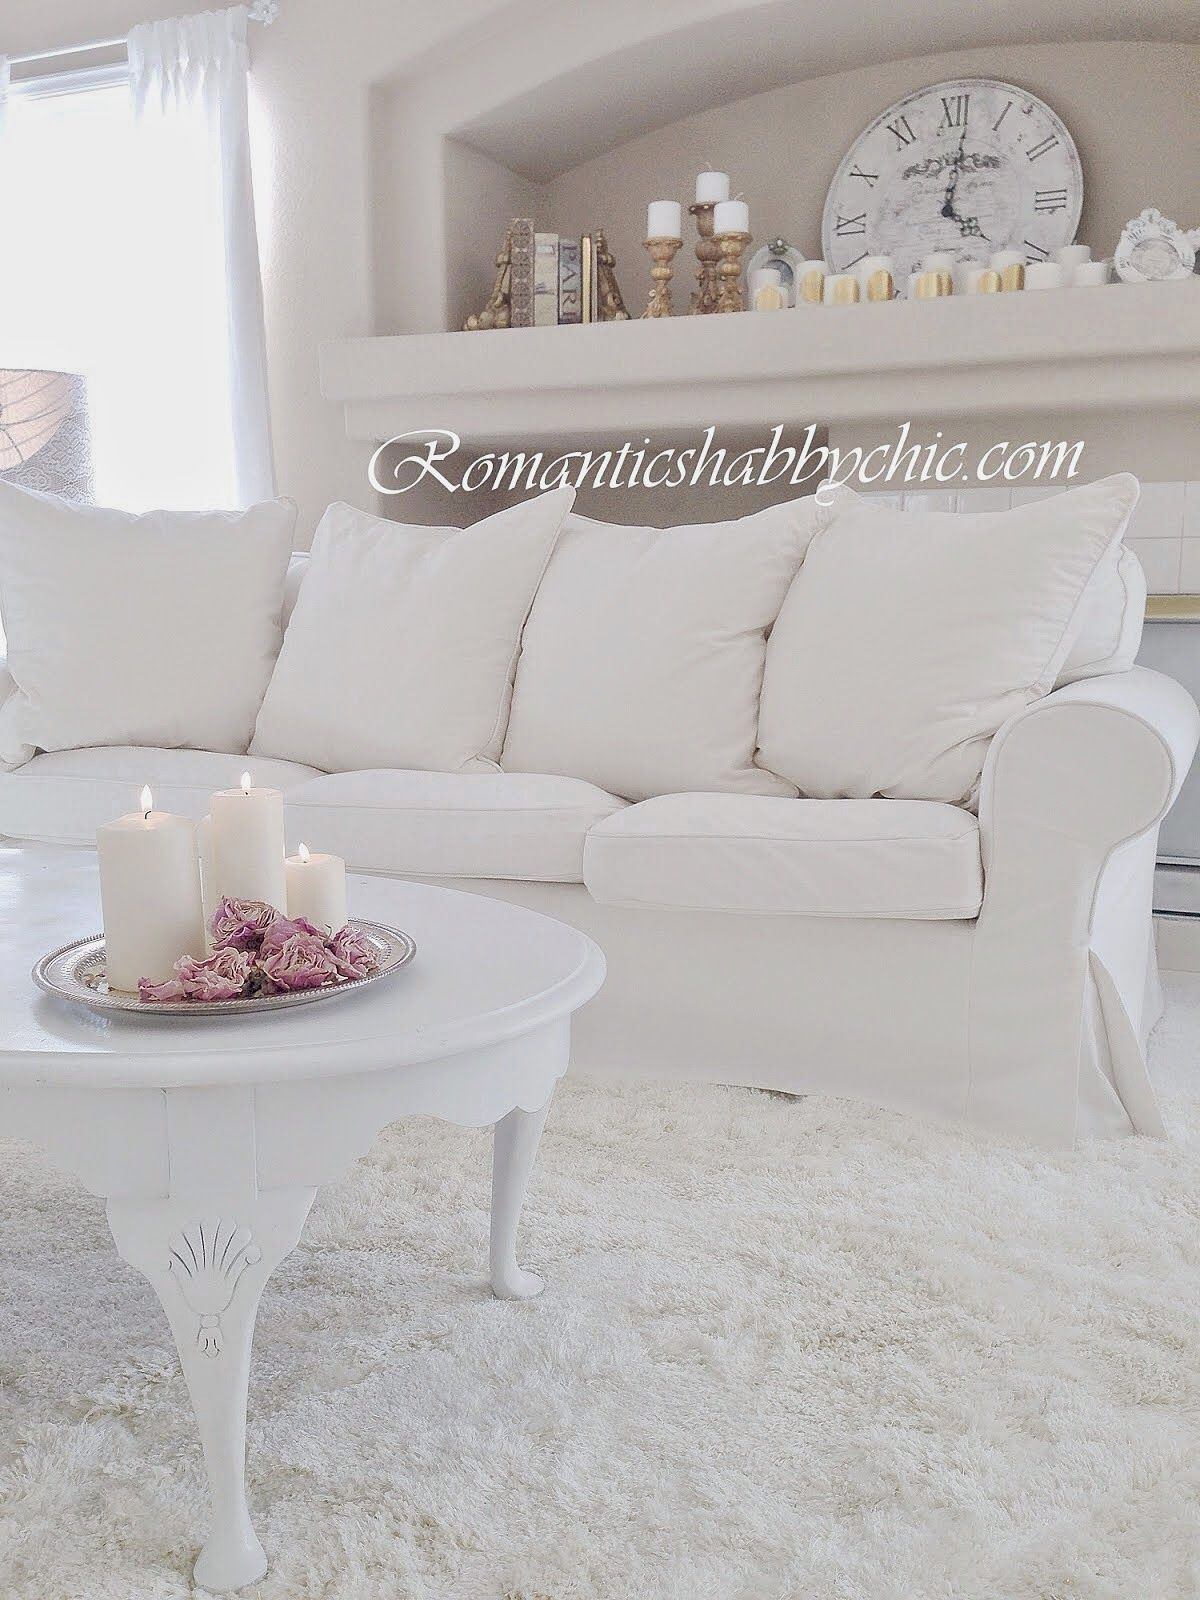 Romantic Shabby Chic Home | Ethereal whites | Pinterest | Romantic ...